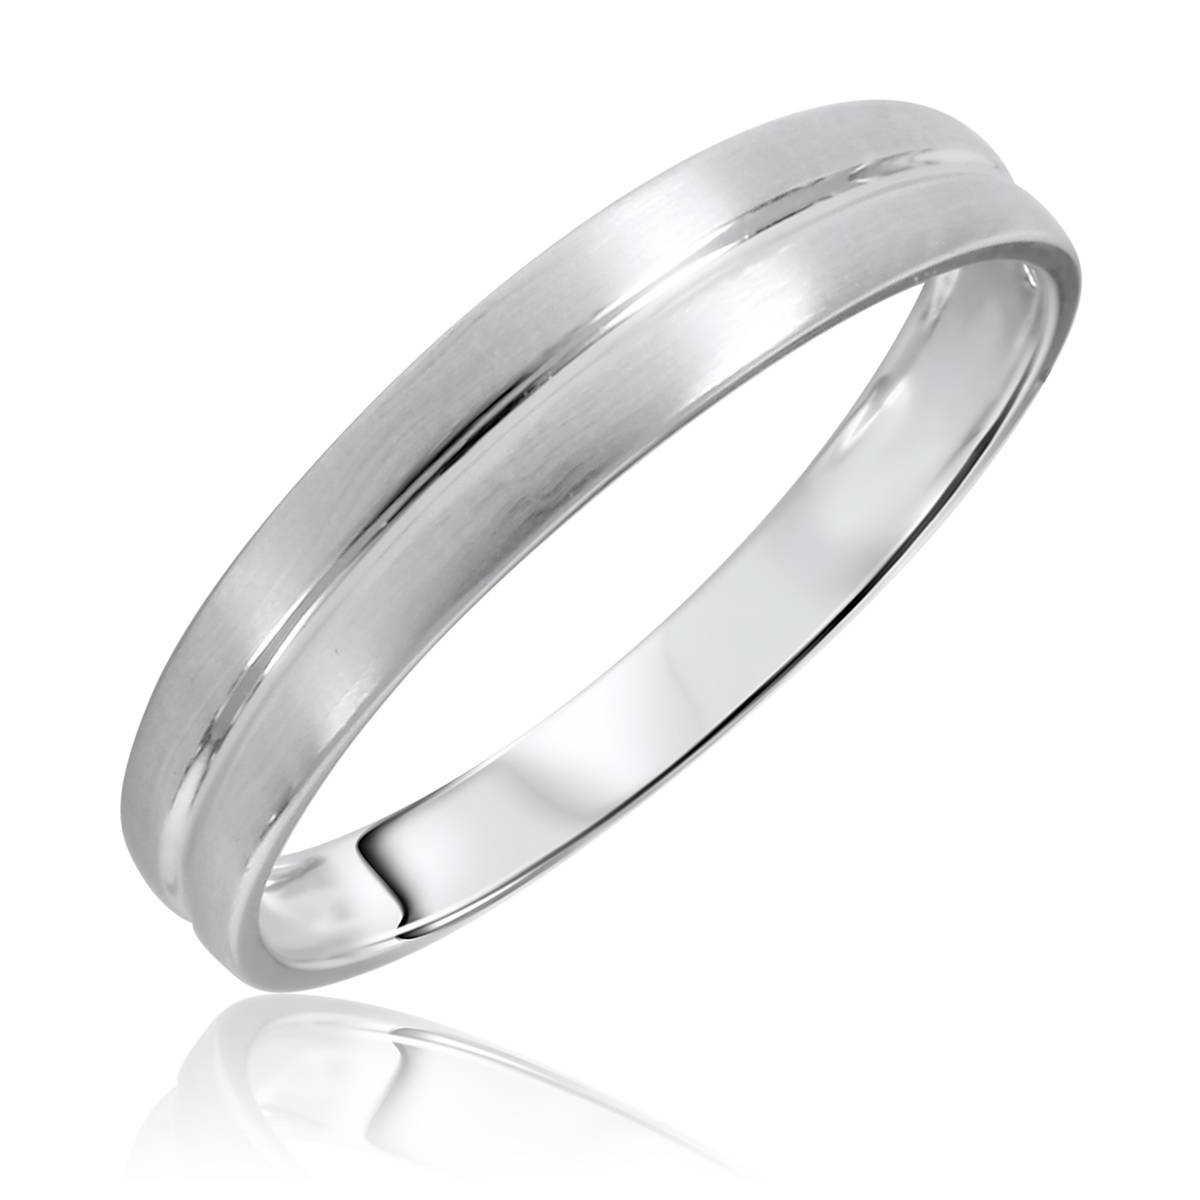 Mens Wedding Band 14K White Gold For Current Gold And White Gold Wedding Bands (View 9 of 15)